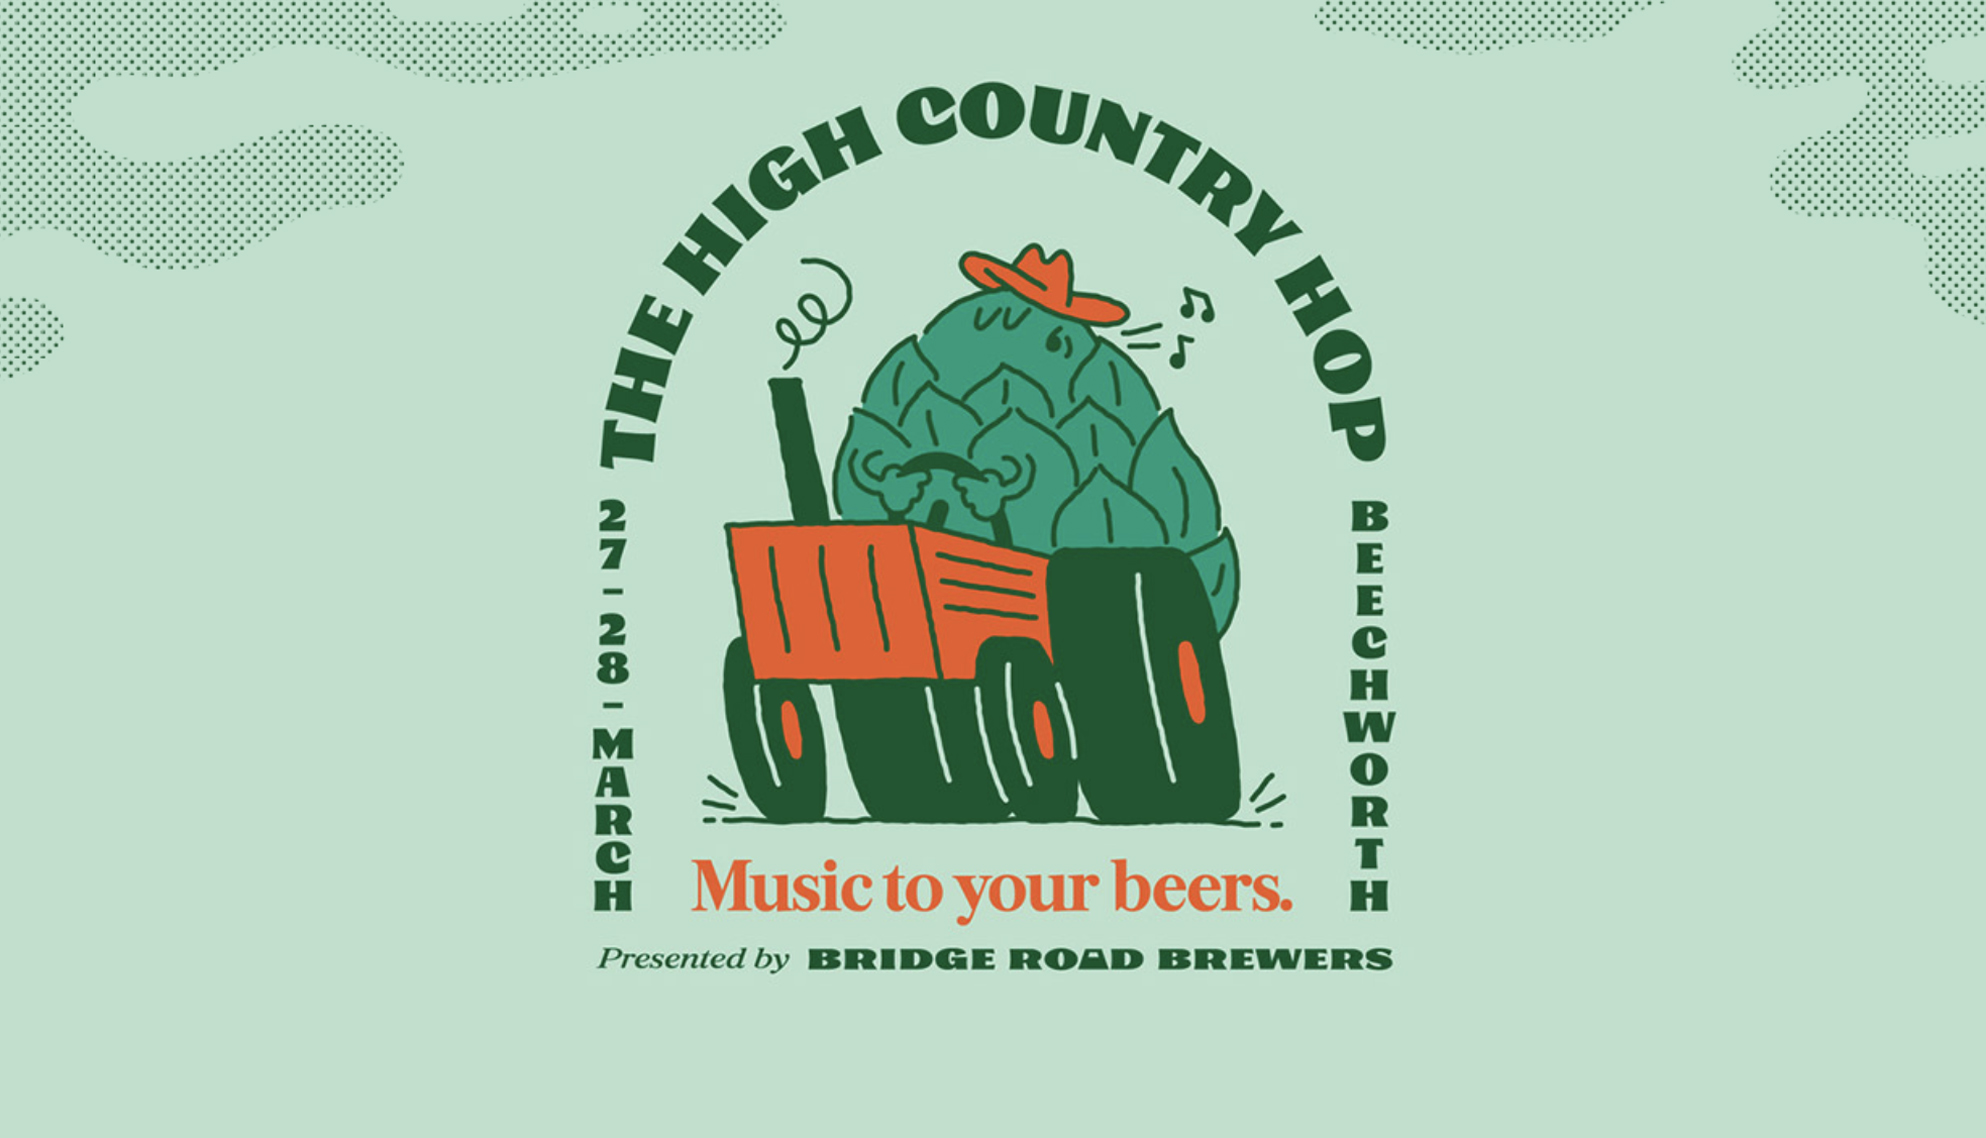 Bridge Road Brewers Promotes Festival That's 'music To Your Beers' In Campaign Via By All Means photo